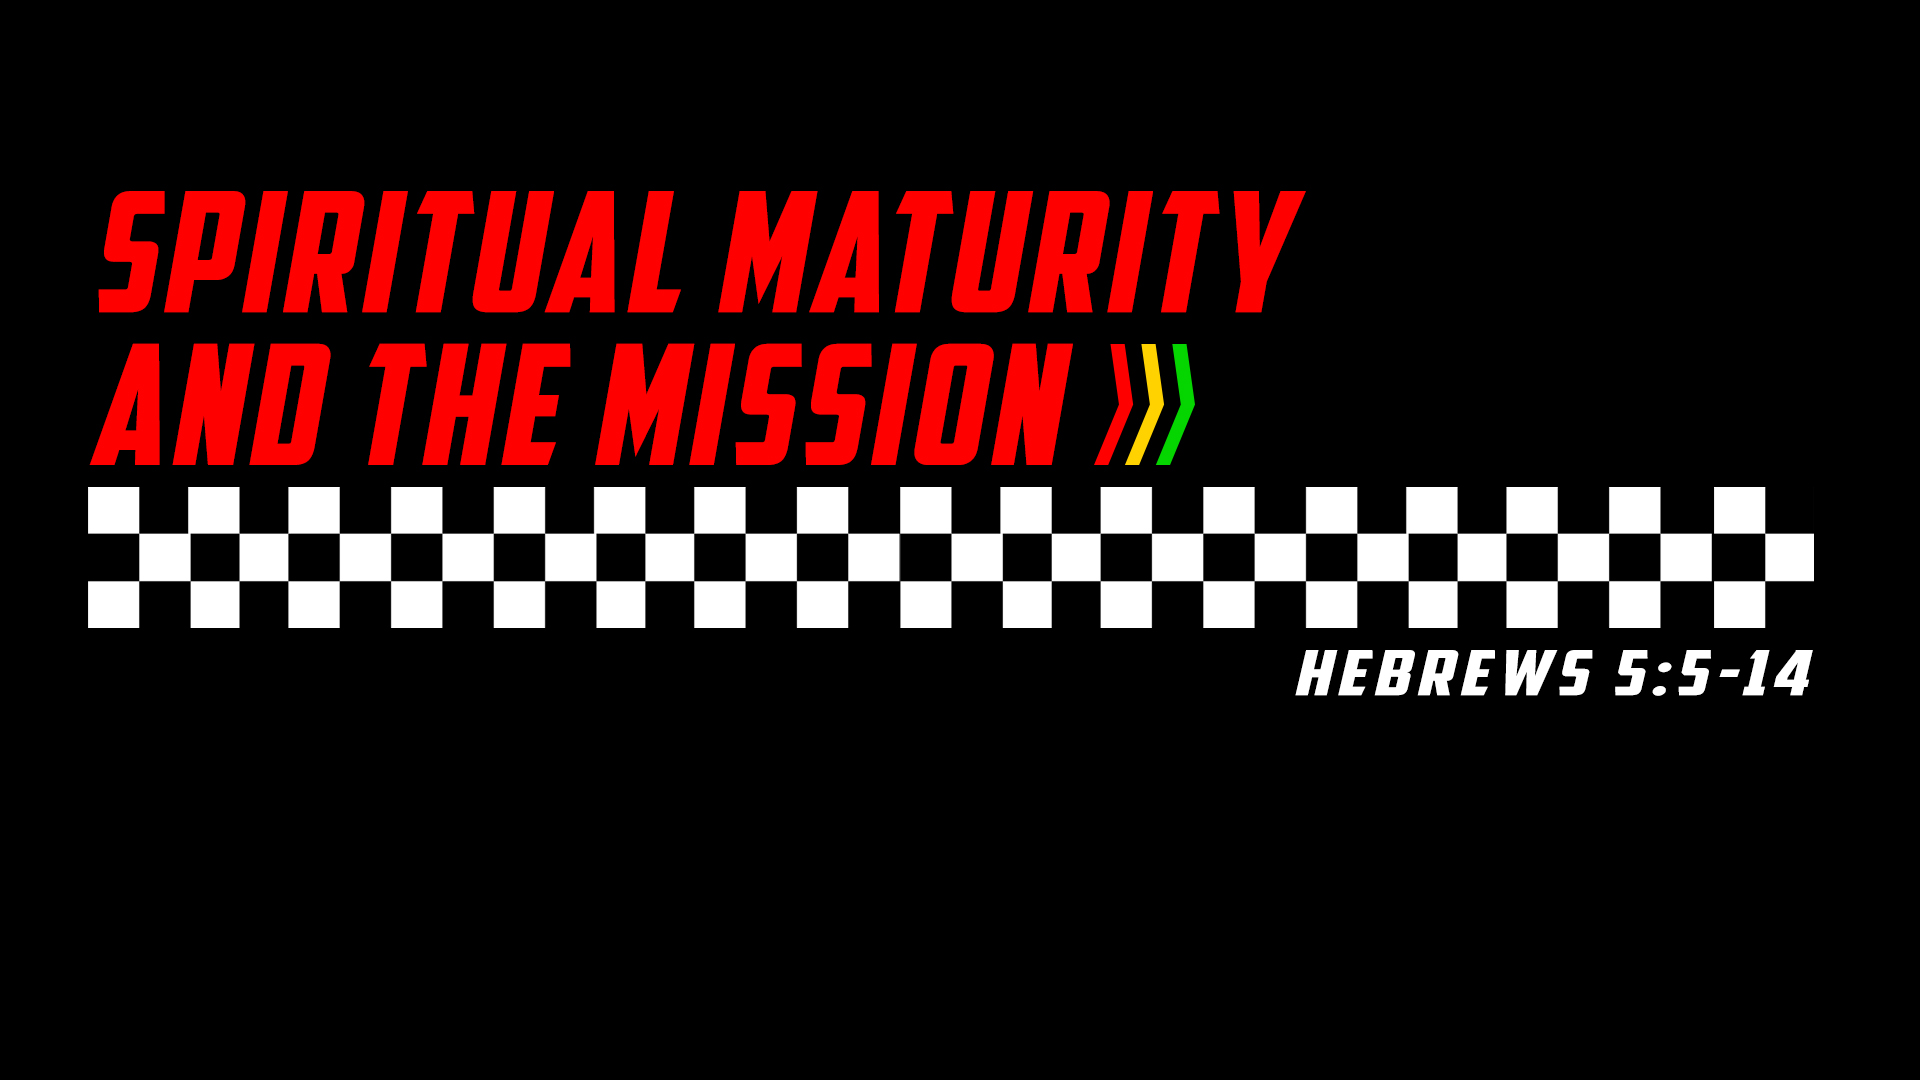 Spiritual Maturity and the Mission